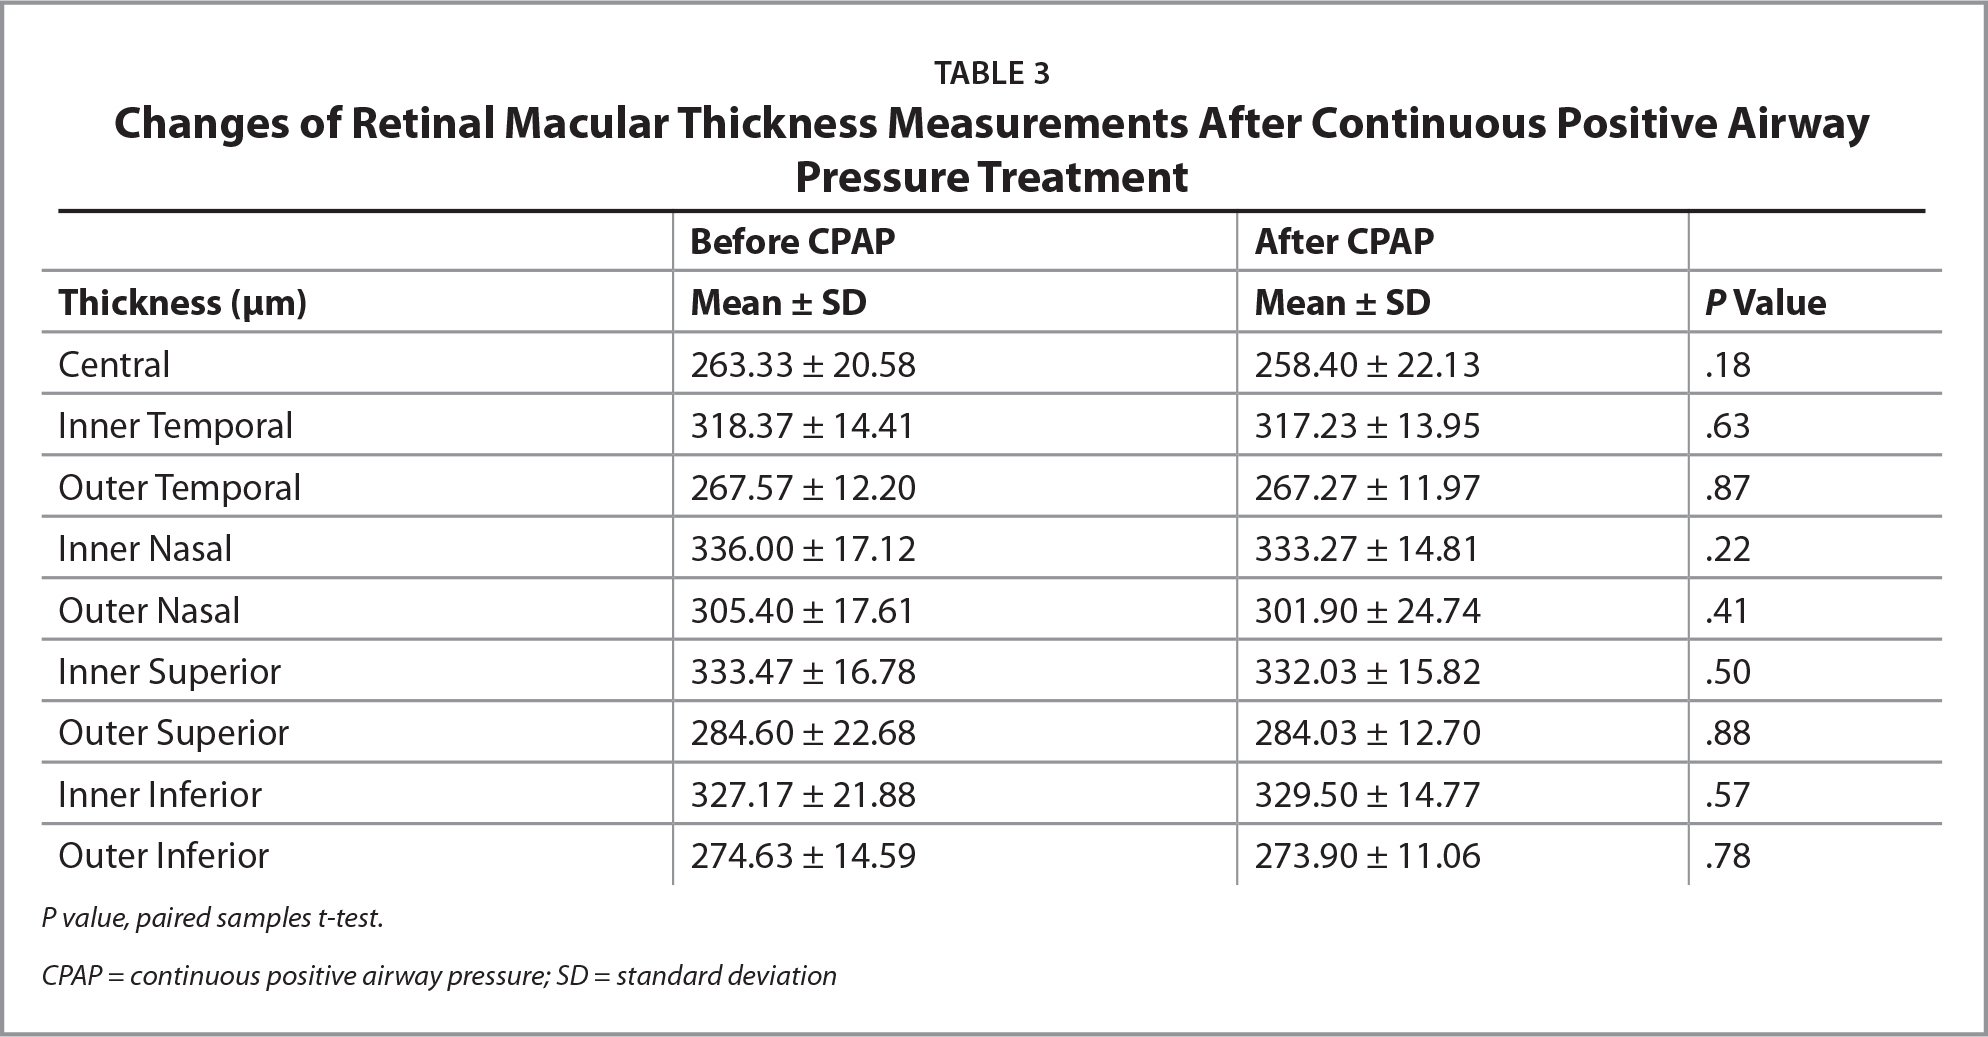 Changes of Retinal Macular Thickness Measurements After Continuous Positive Airway Pressure Treatment